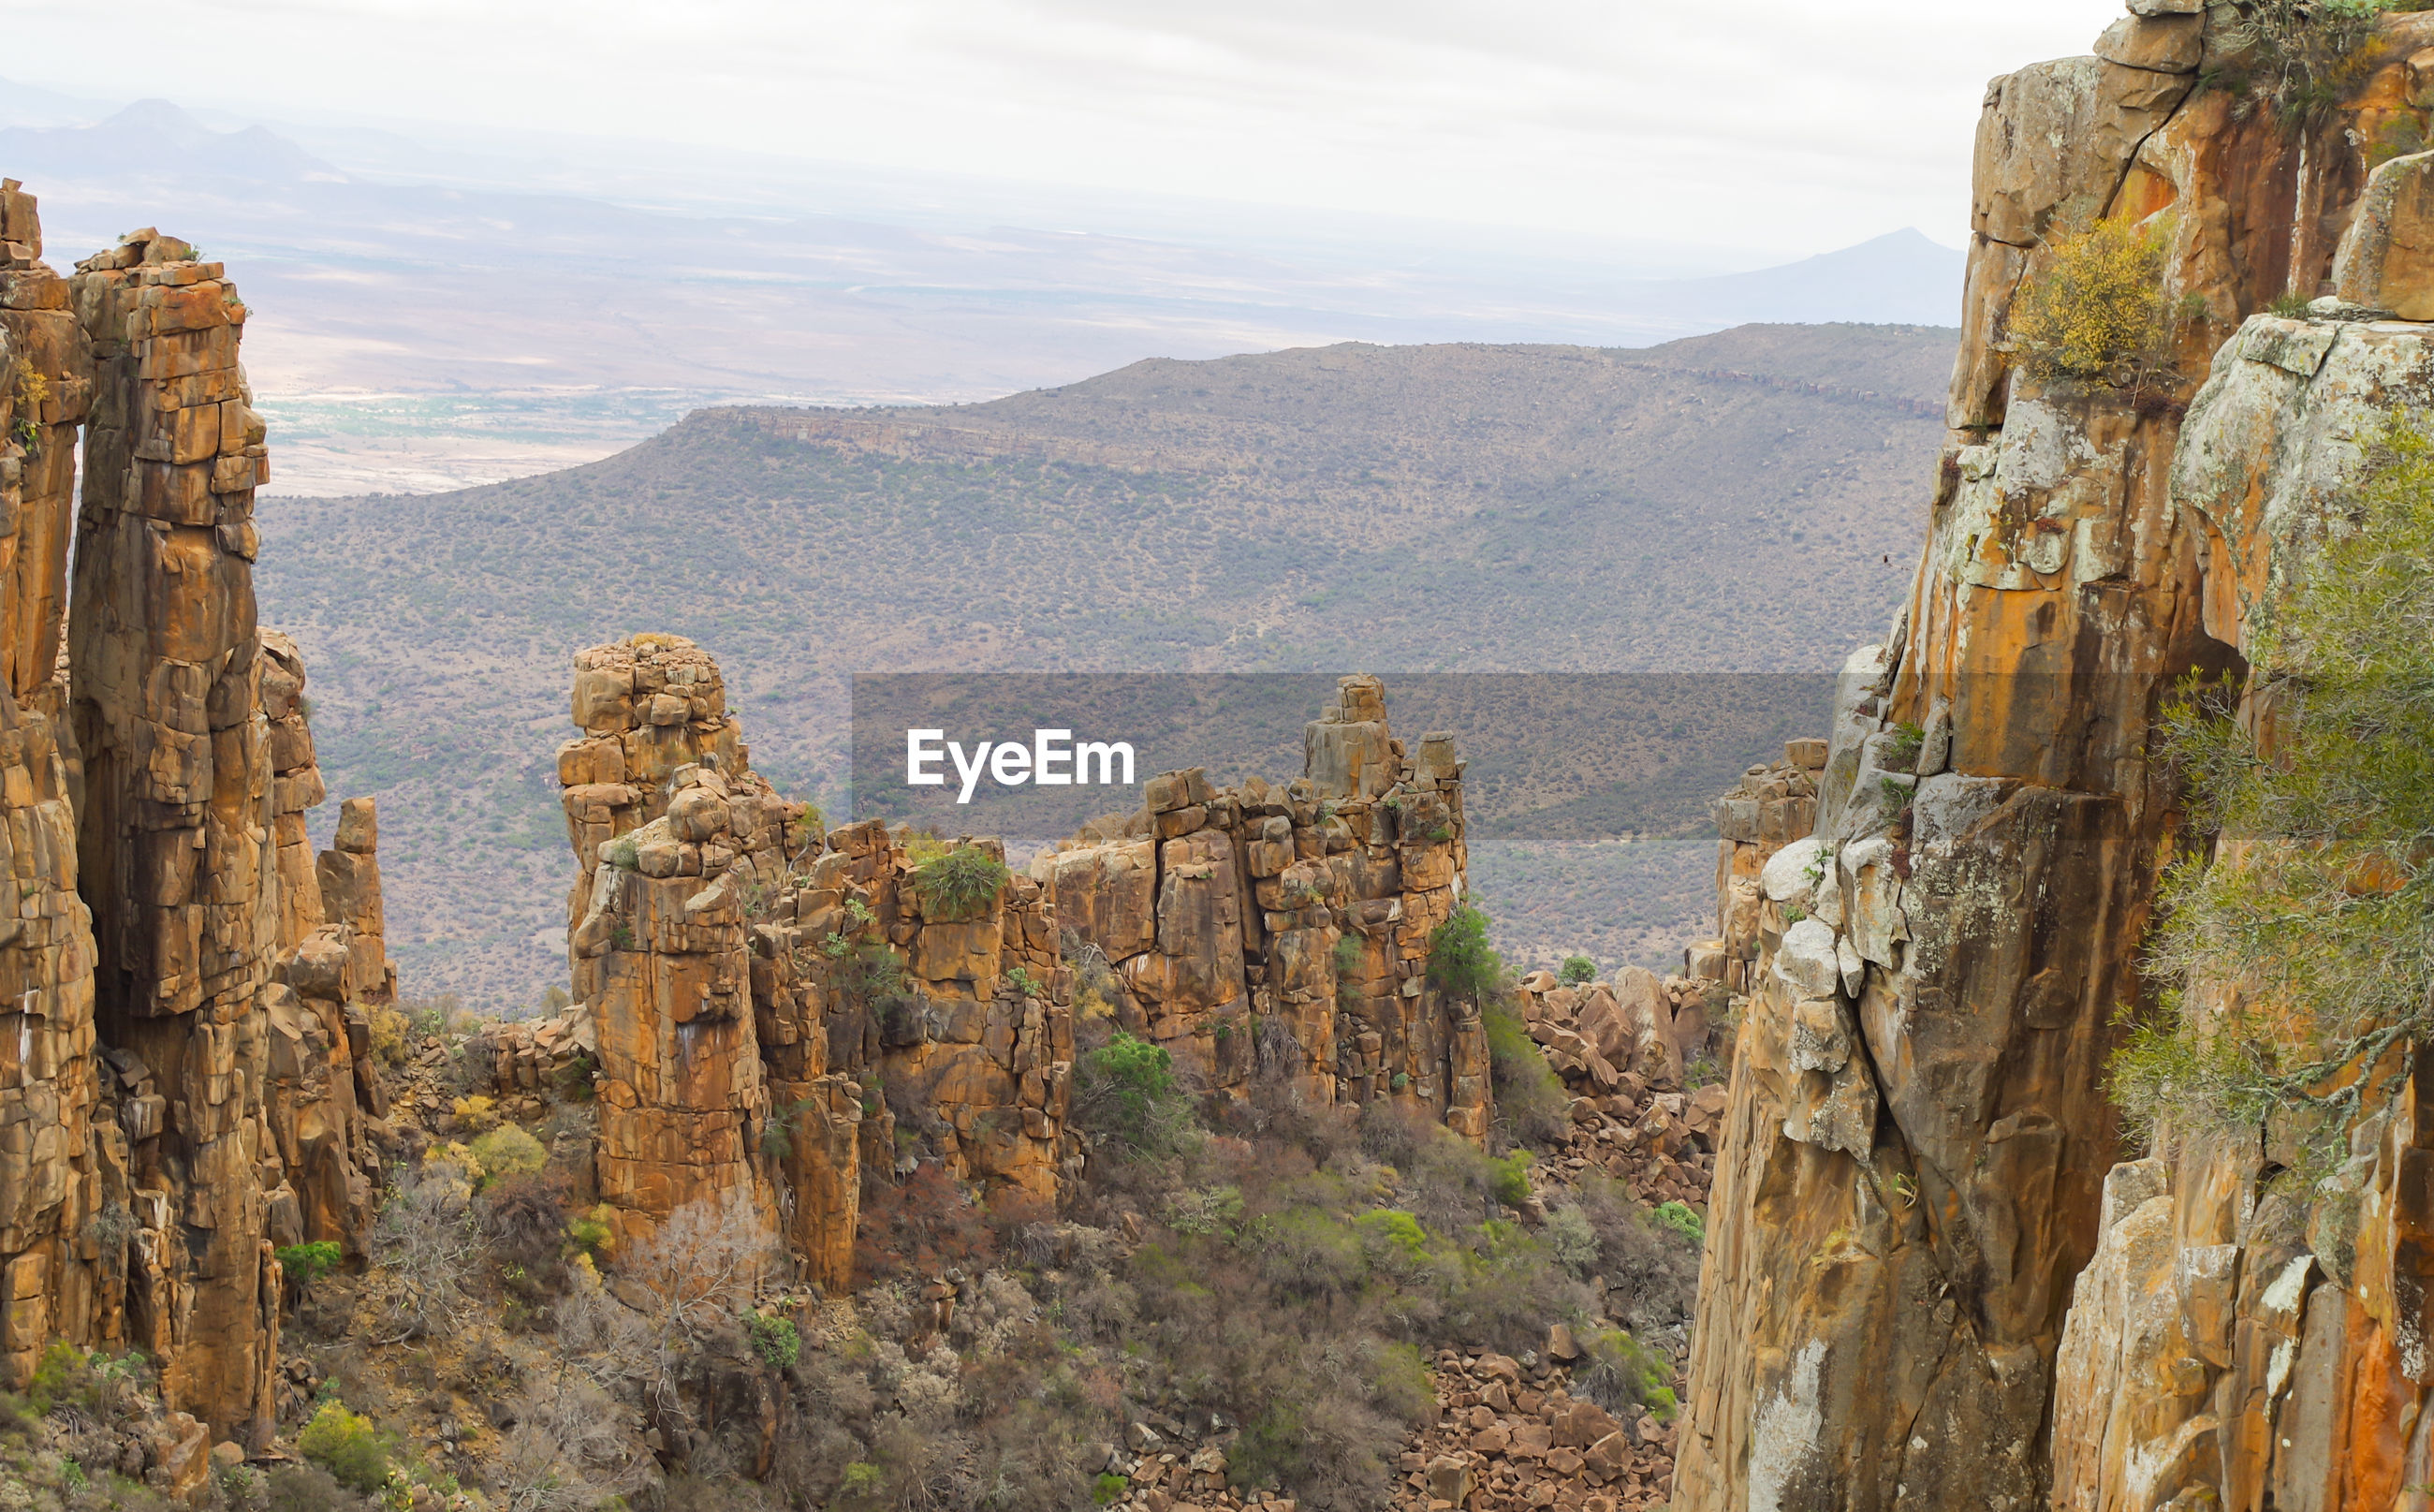 PANORAMIC VIEW OF ROCKS AND MOUNTAINS